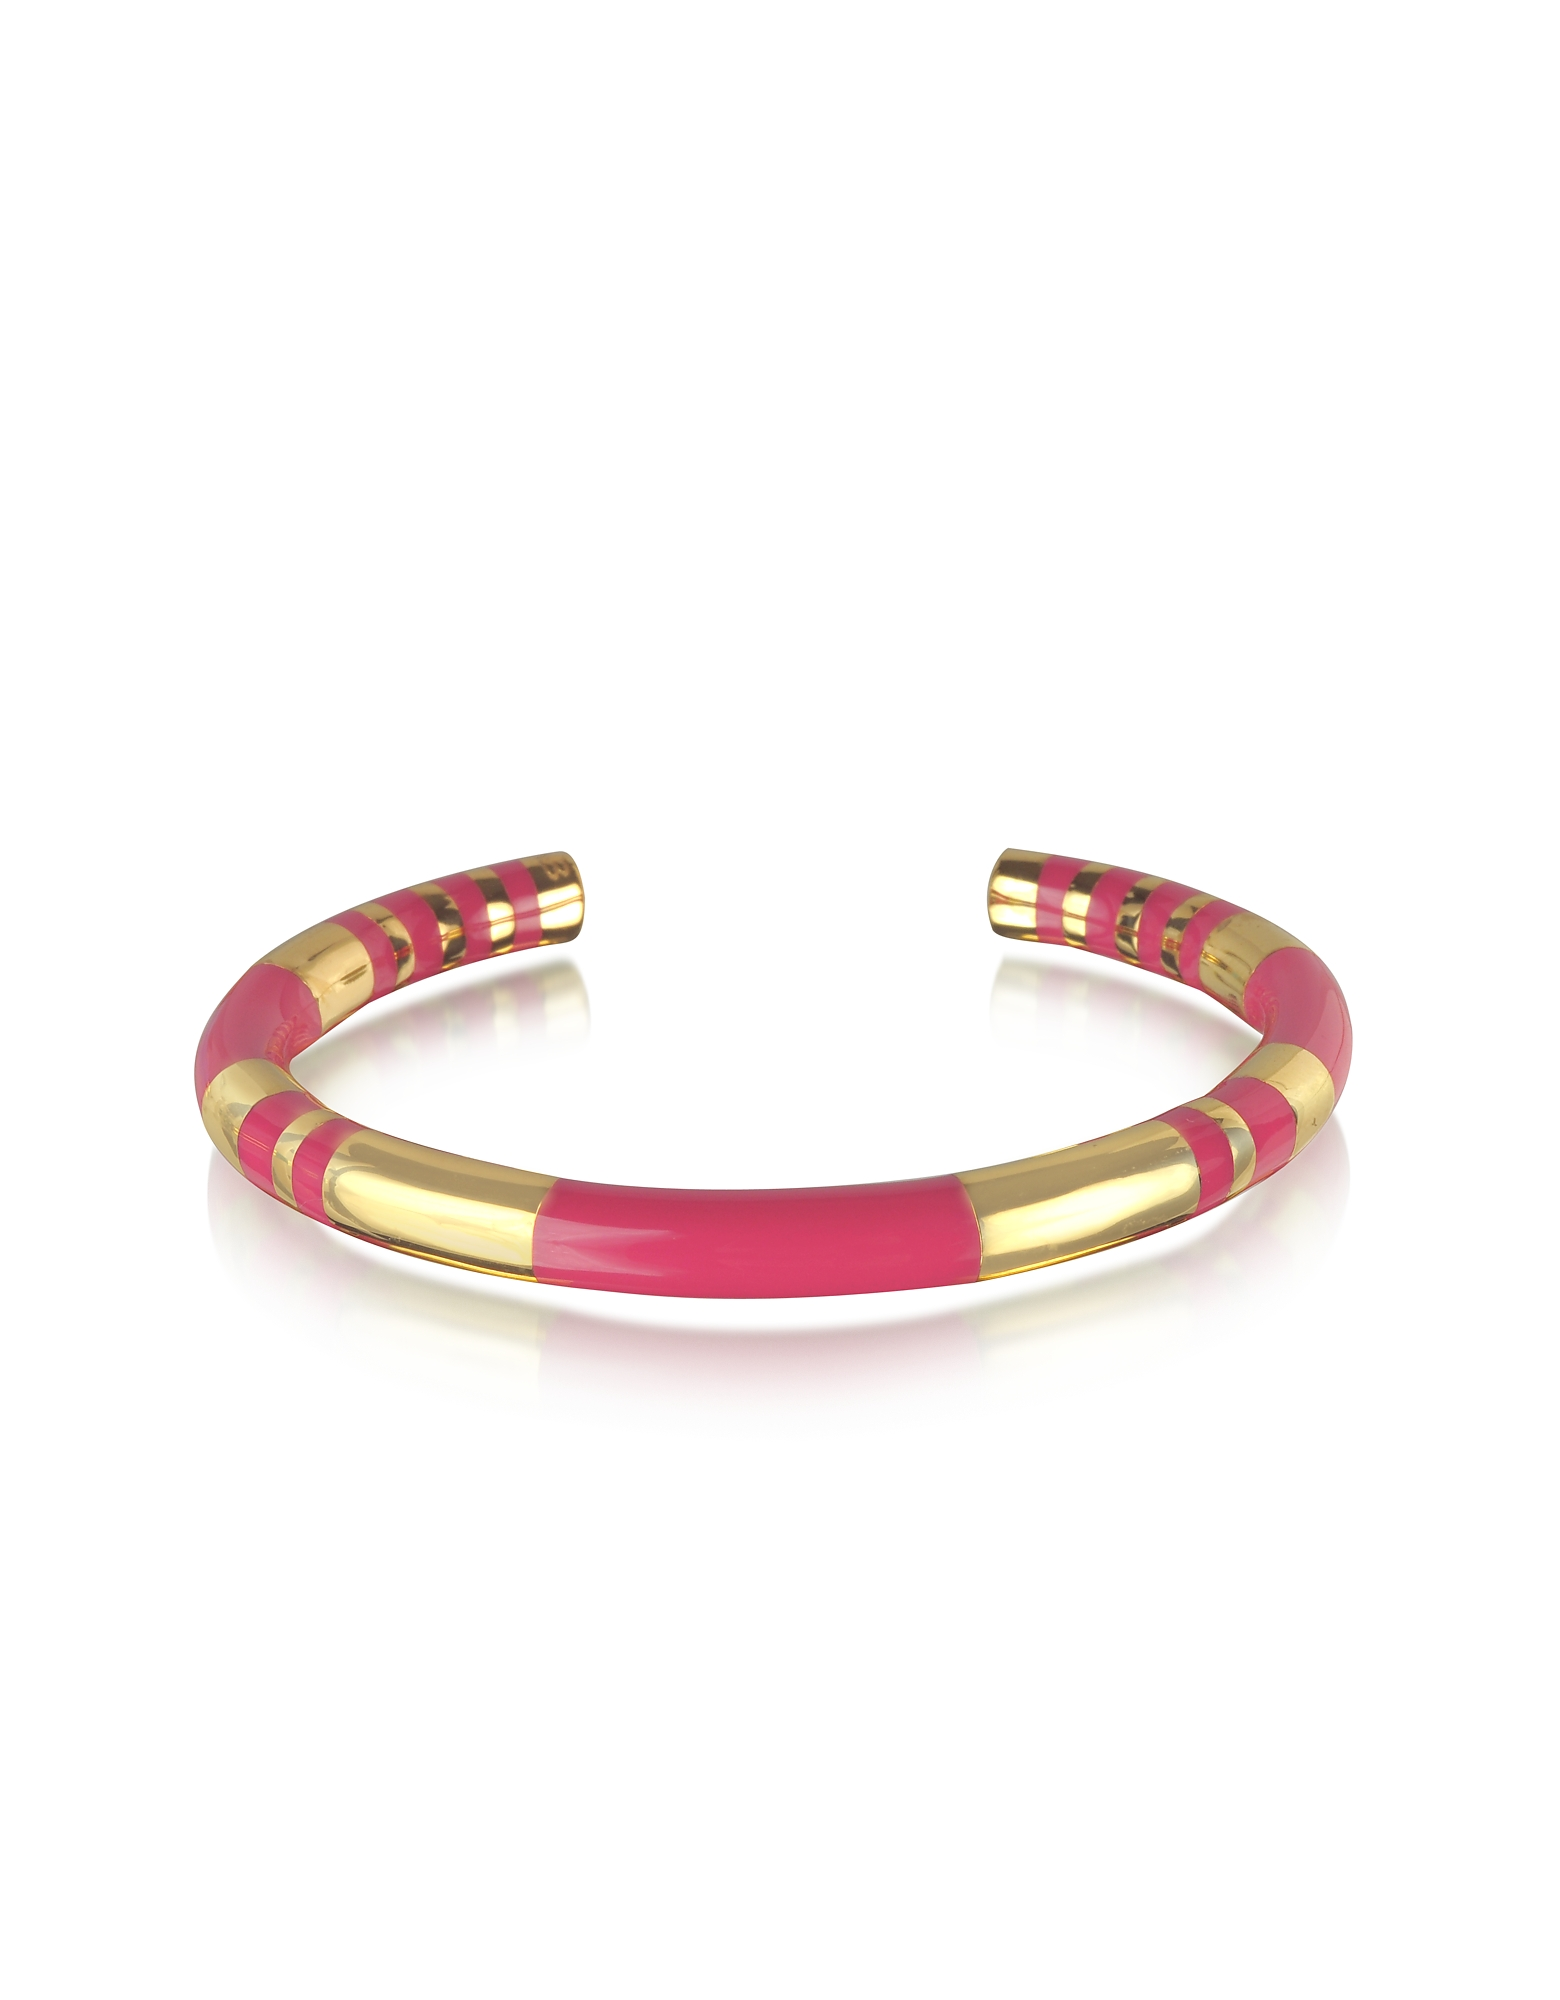 Aurelie Bidermann Bracelets, 18K gold-plated & Fuchsia Enamel Resin Positano Striped Bangle